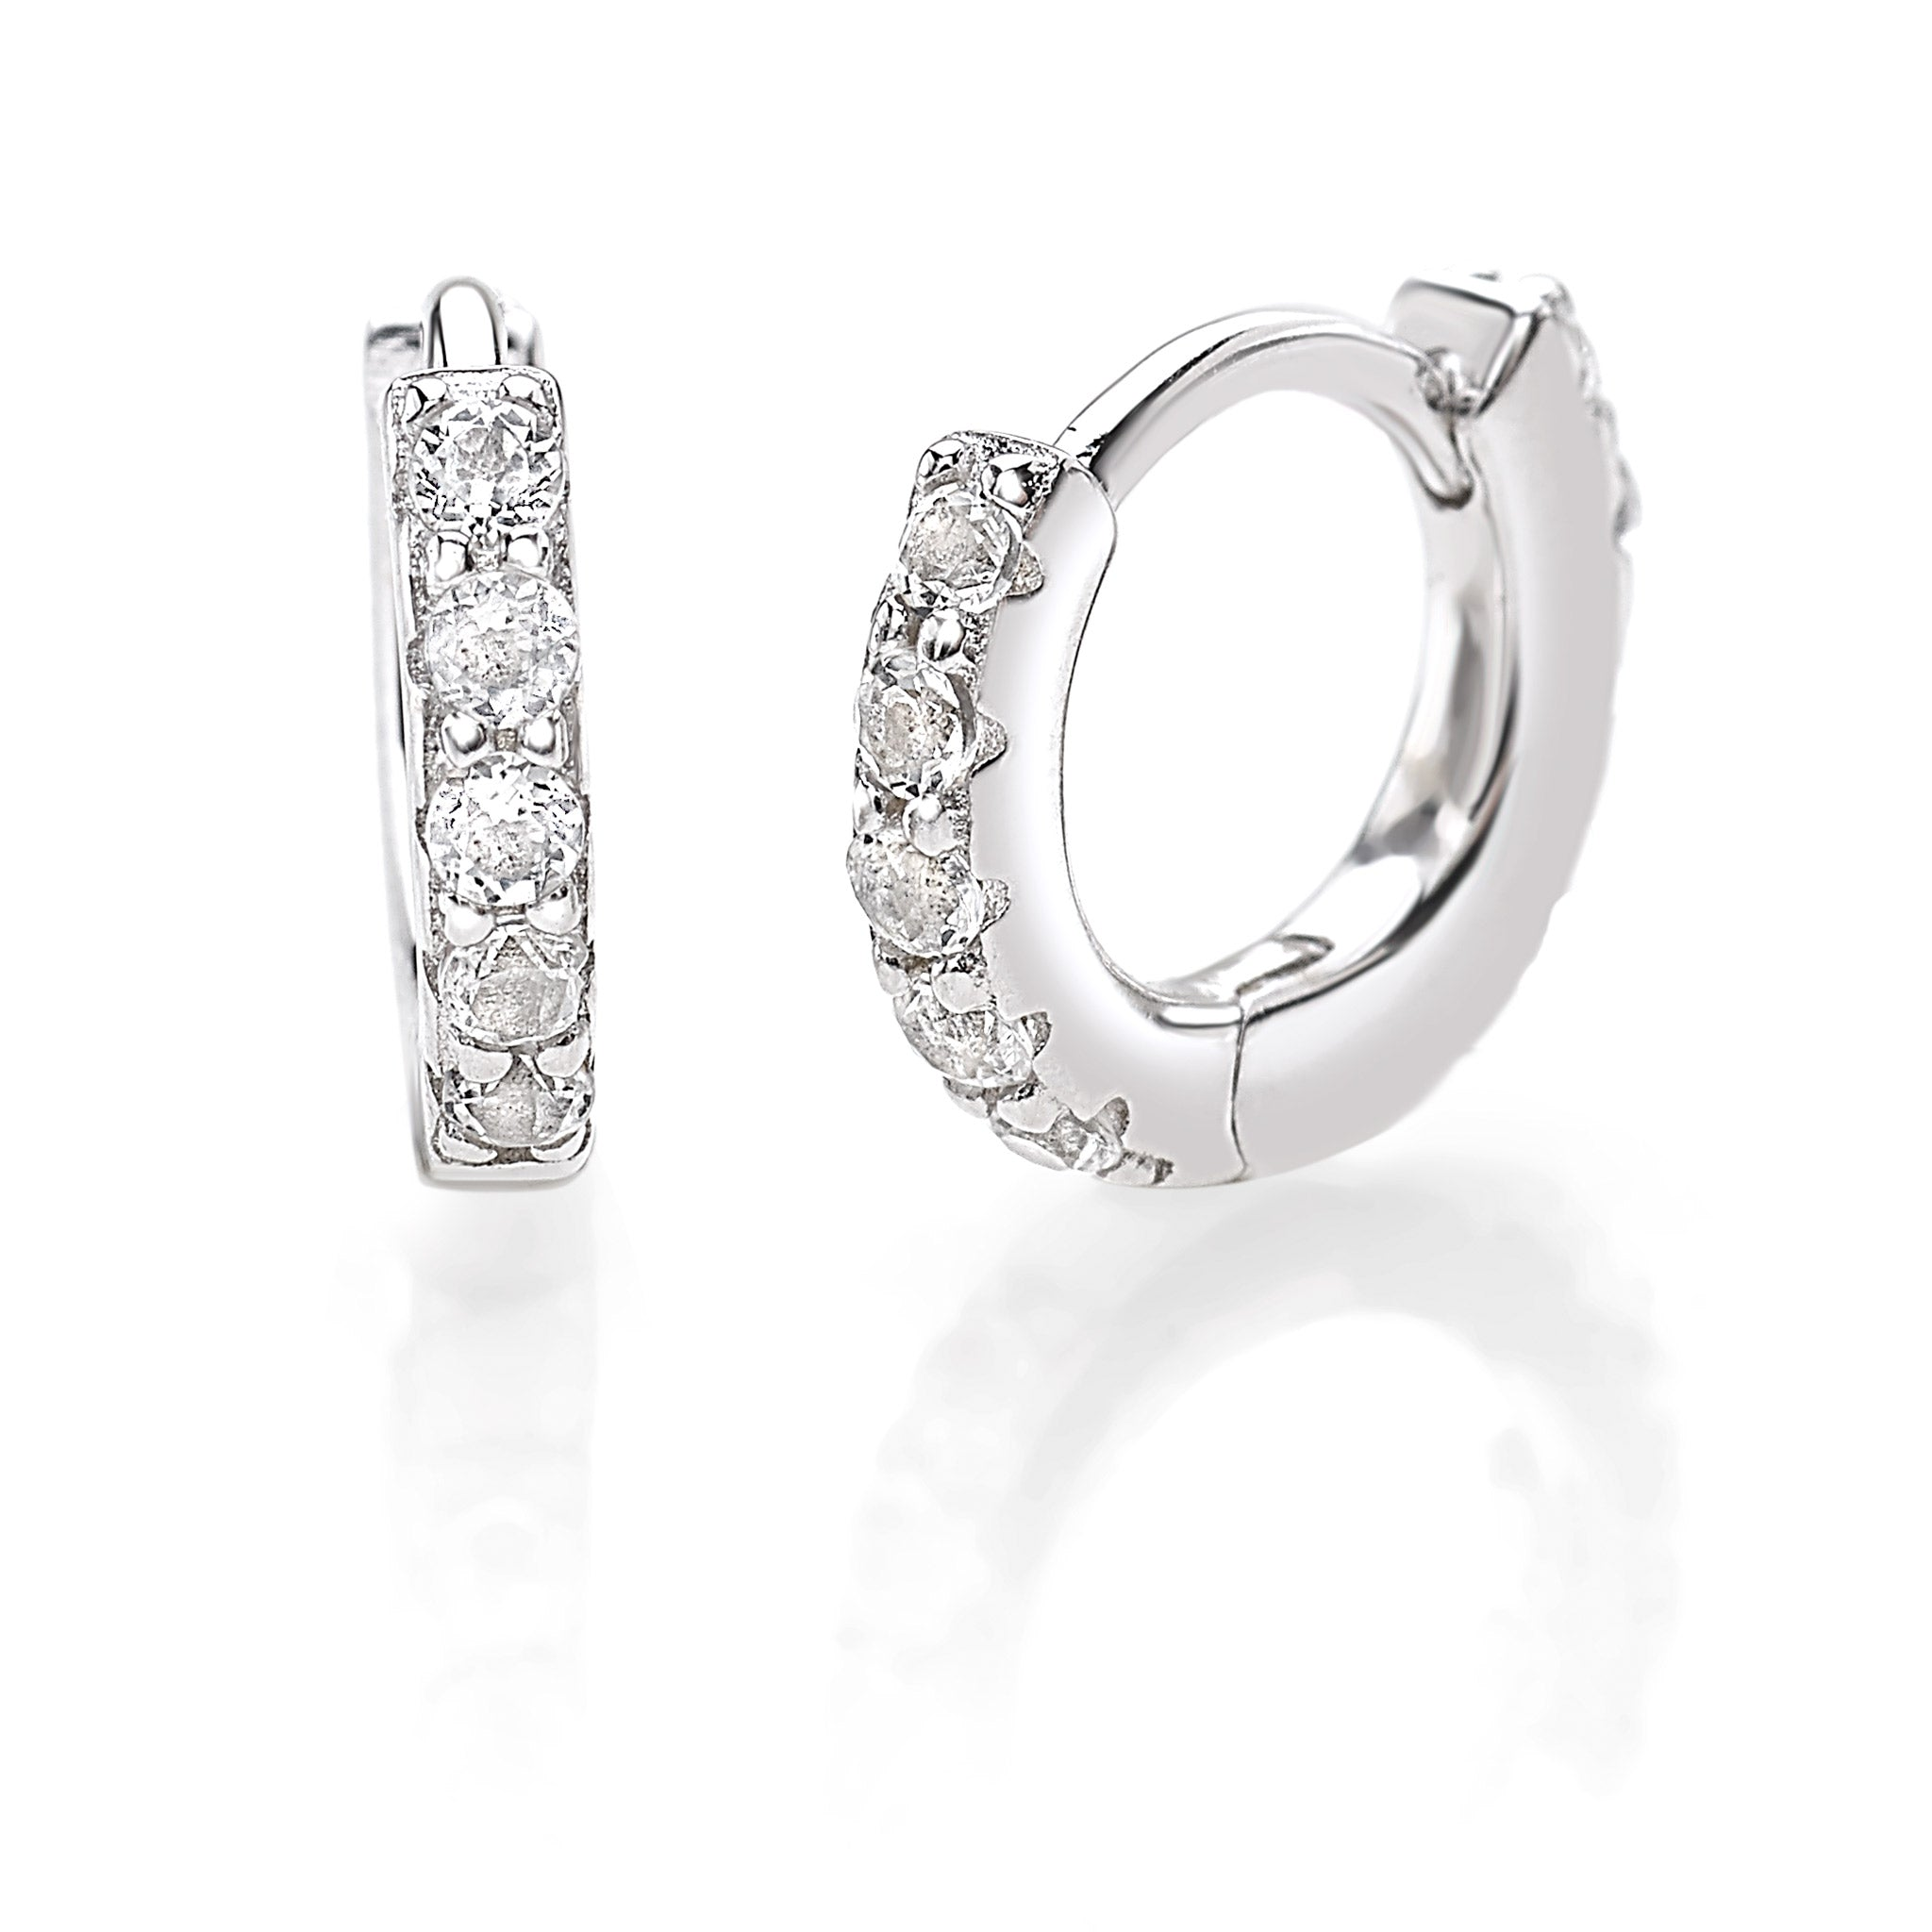 Rhodium Plated Ear Hoops in 925 Sterling Silver with White Topaz Gemstones